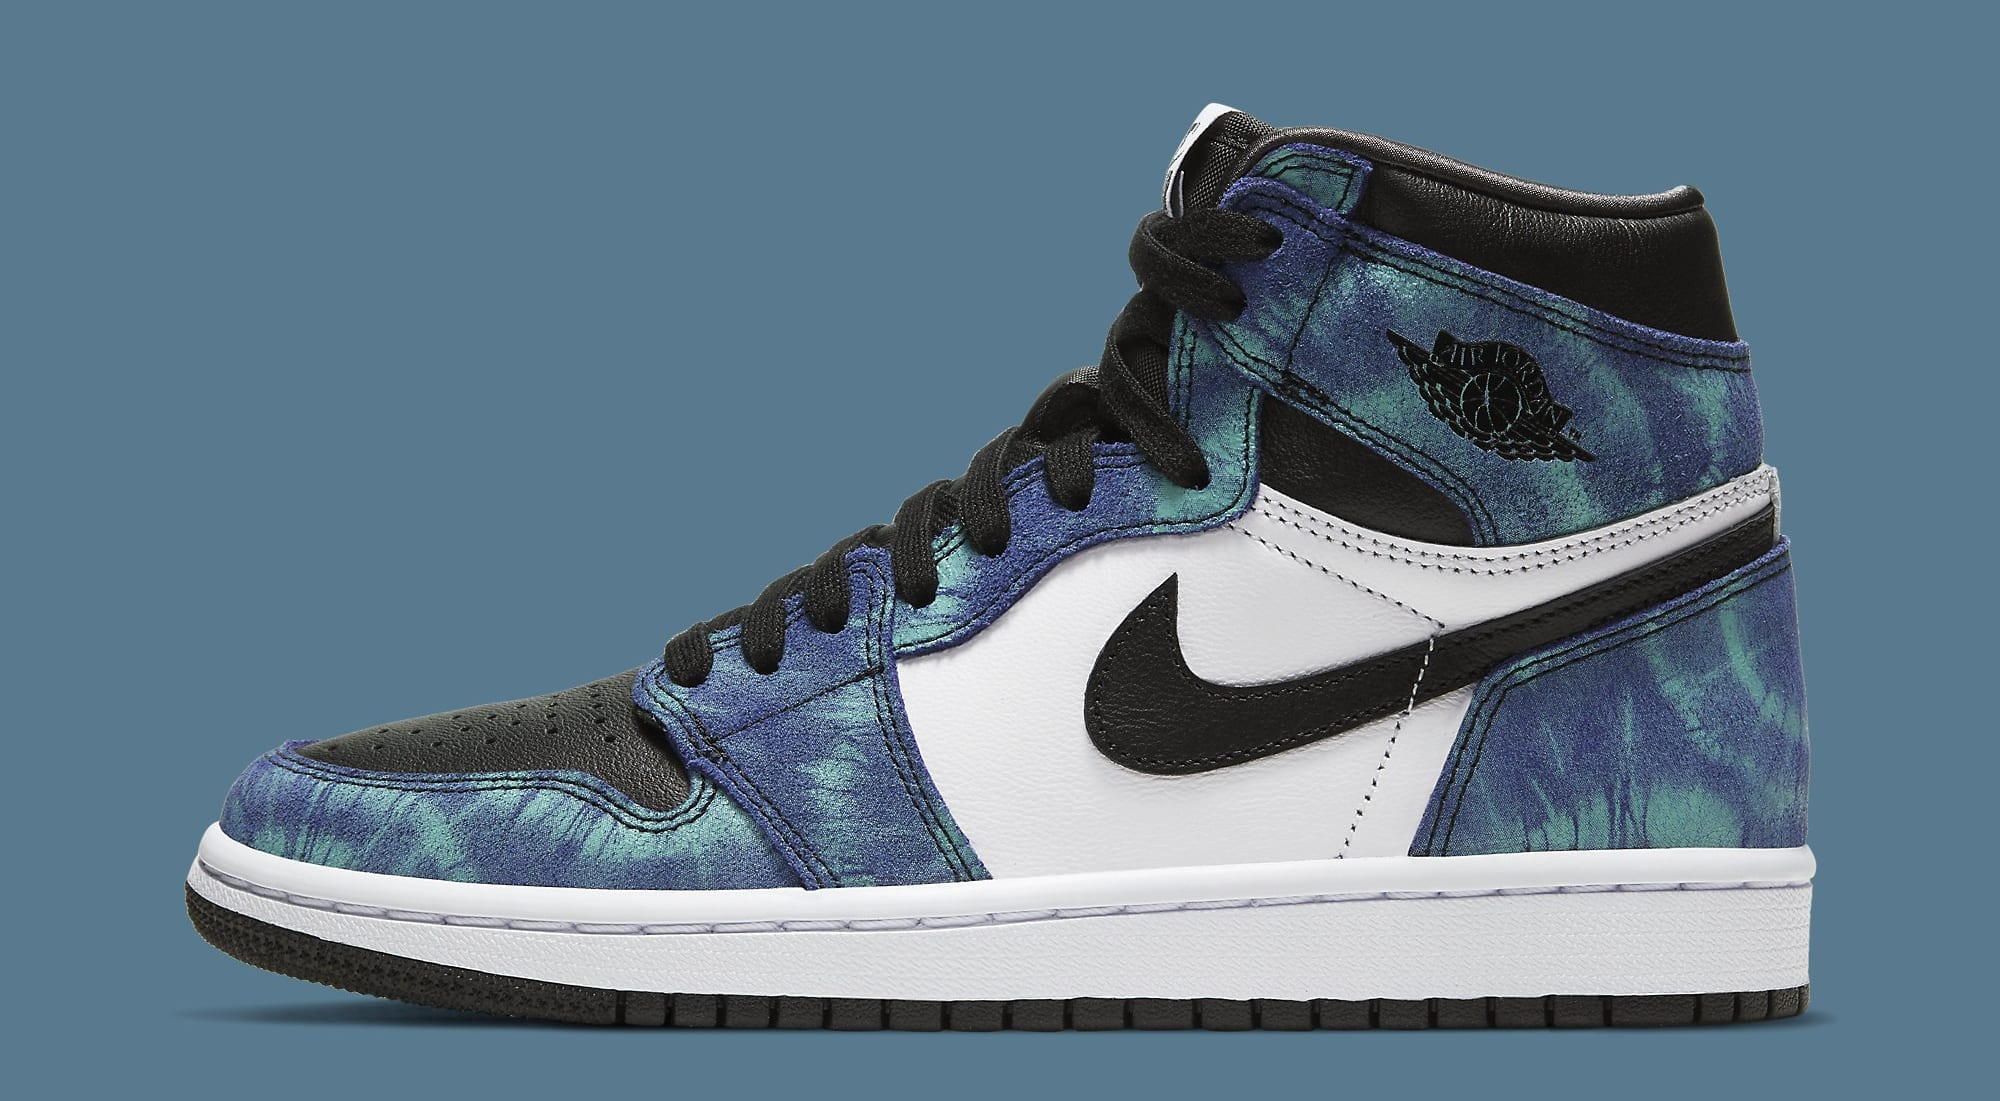 Air Jordan 1 Retro High OG Women's Tie-Dye CD0461-100 Lateral